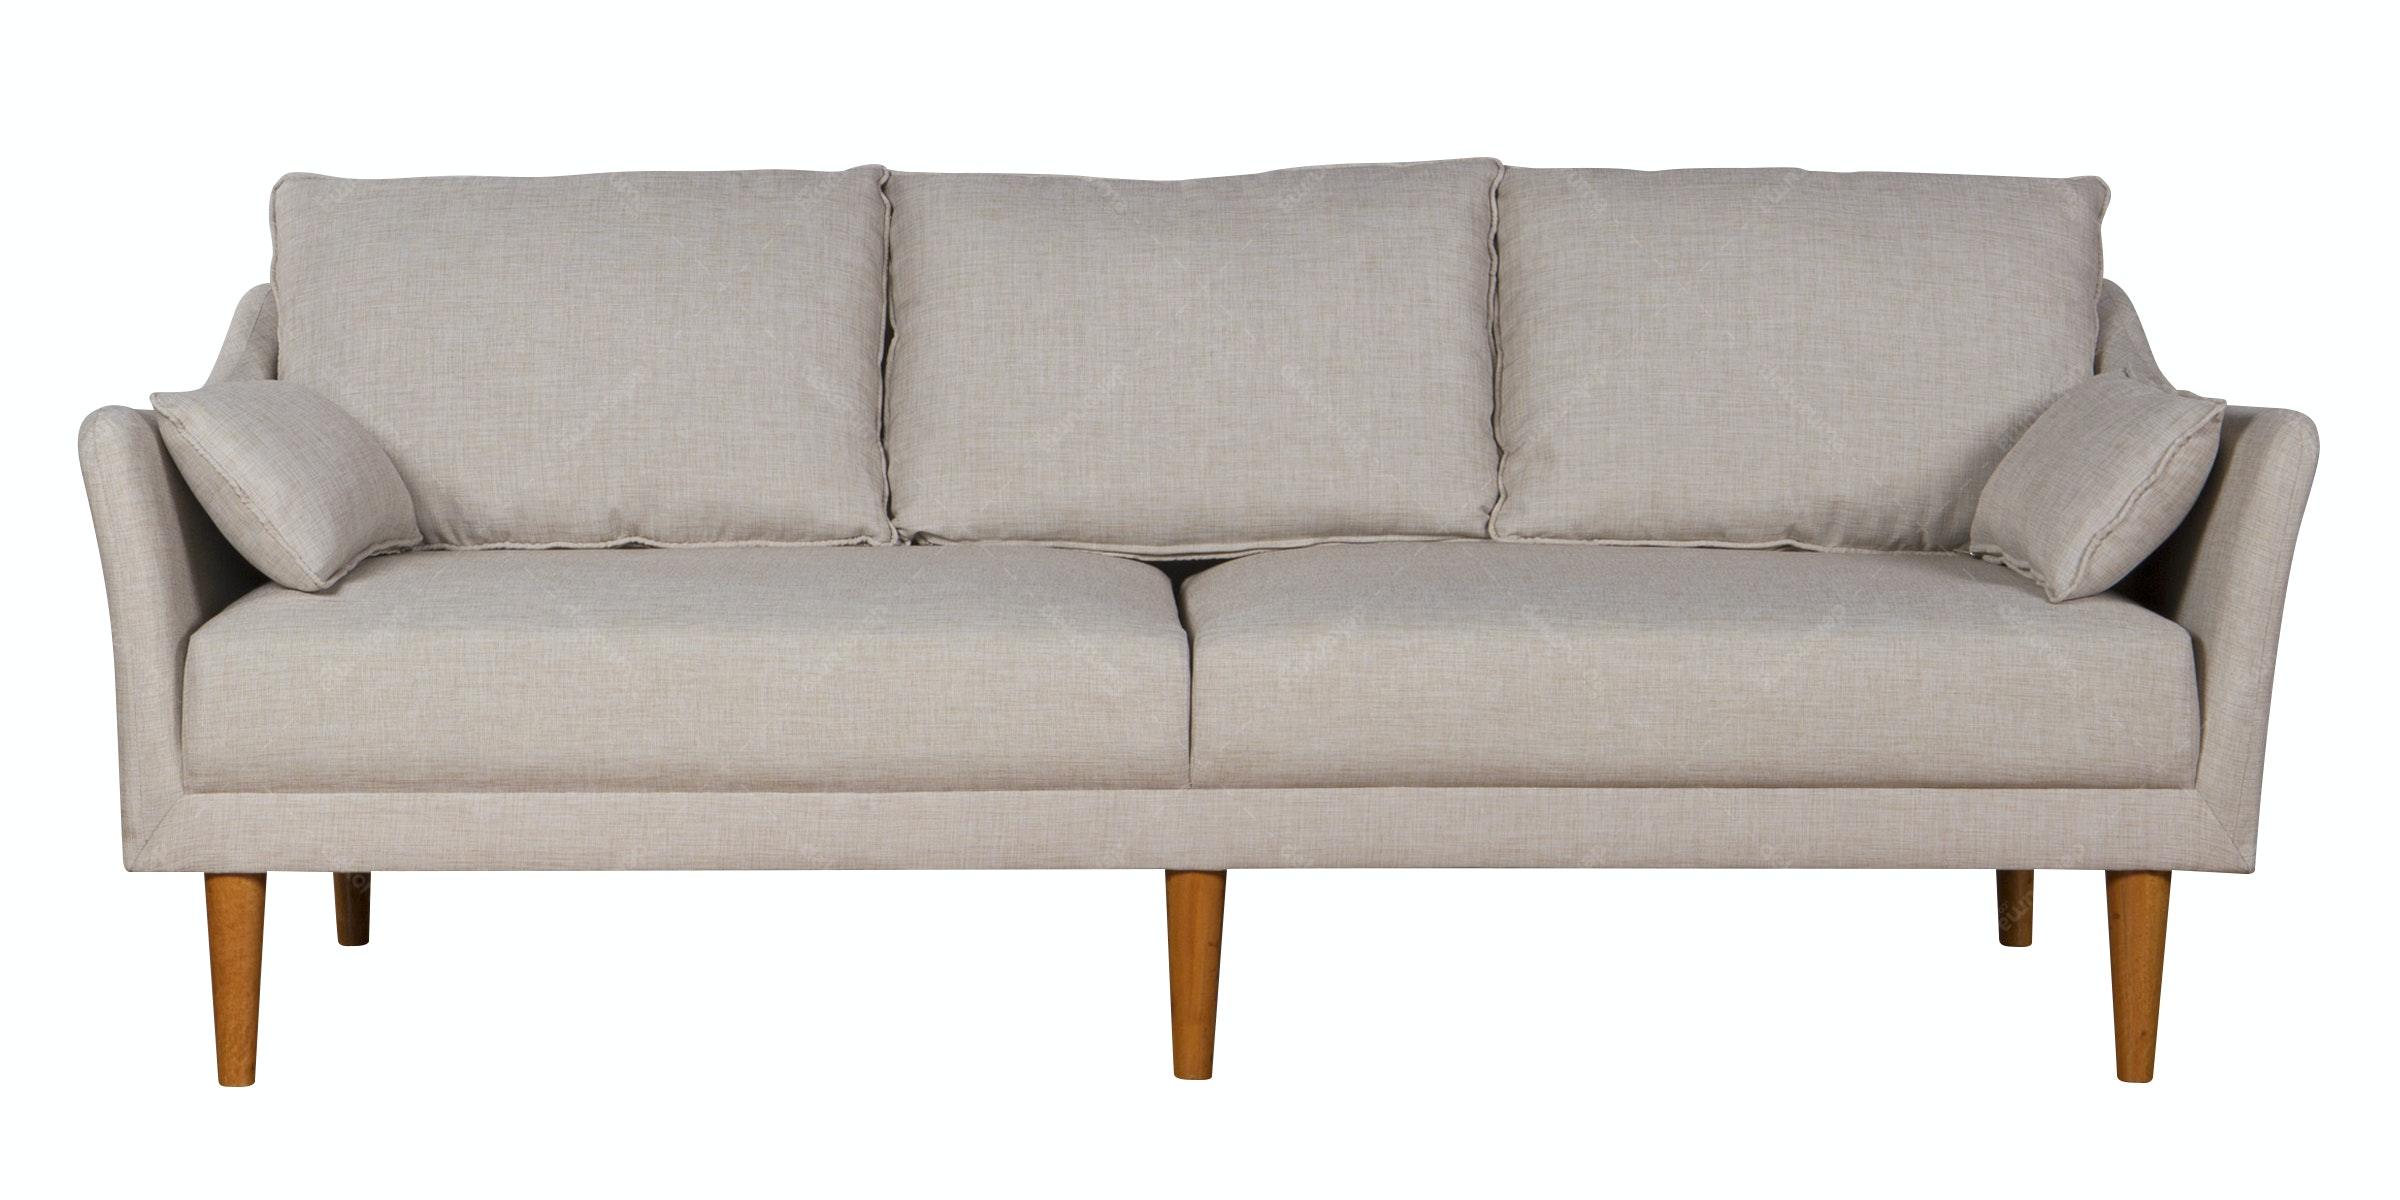 Voda Collection Vita Sofa 3 Dudukan Krem Canvas